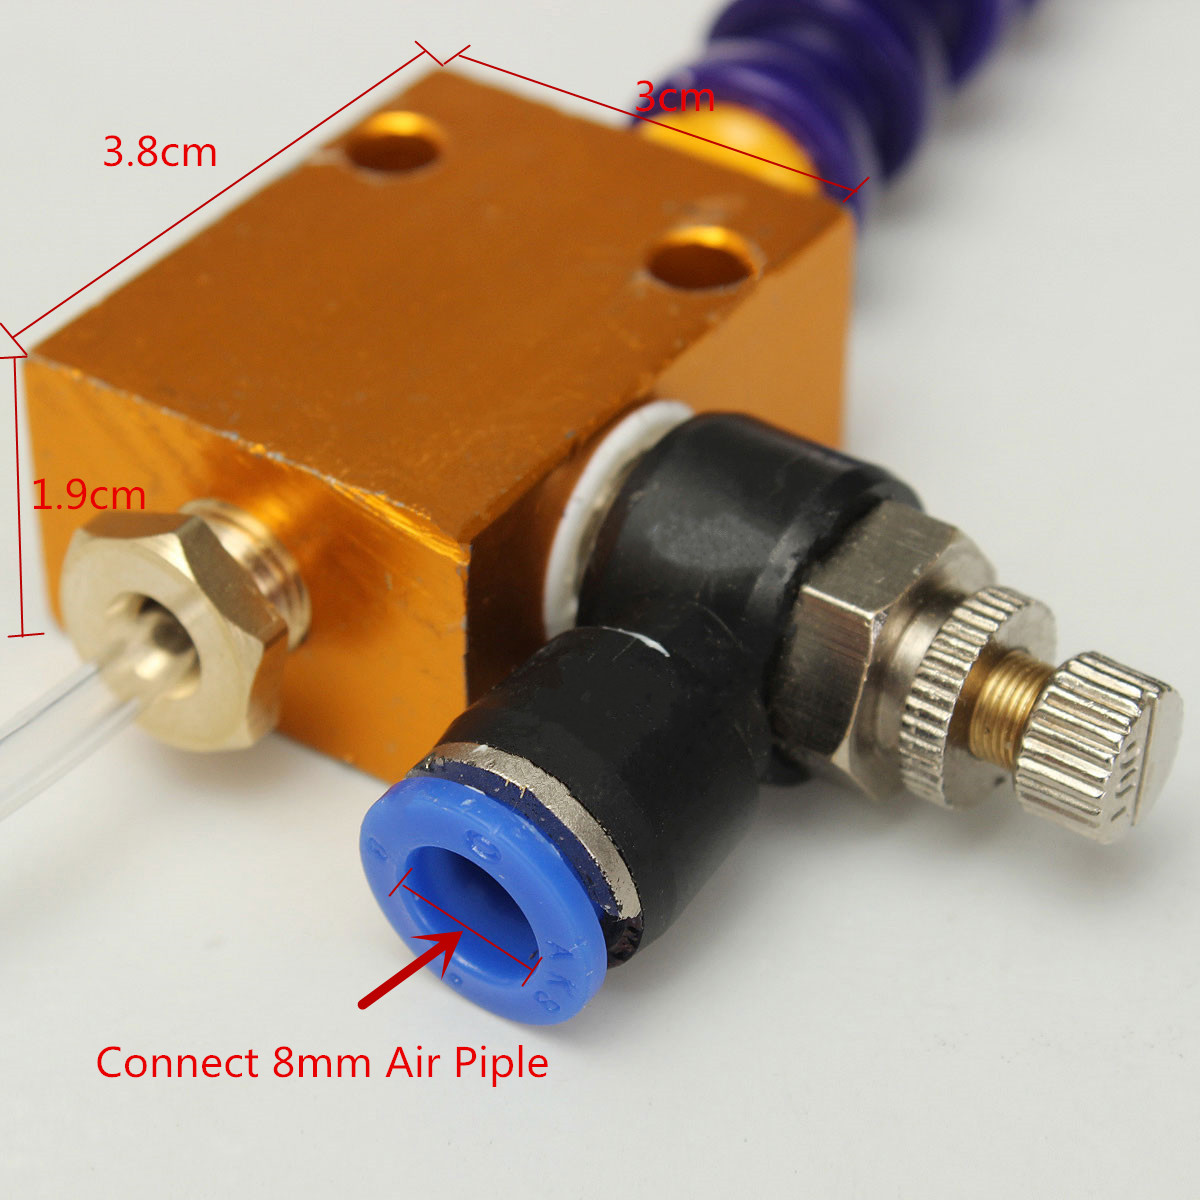 Mist Coolant Mist Lubrication System Unit with 8mm Air Pipe for CNC Milling Dril